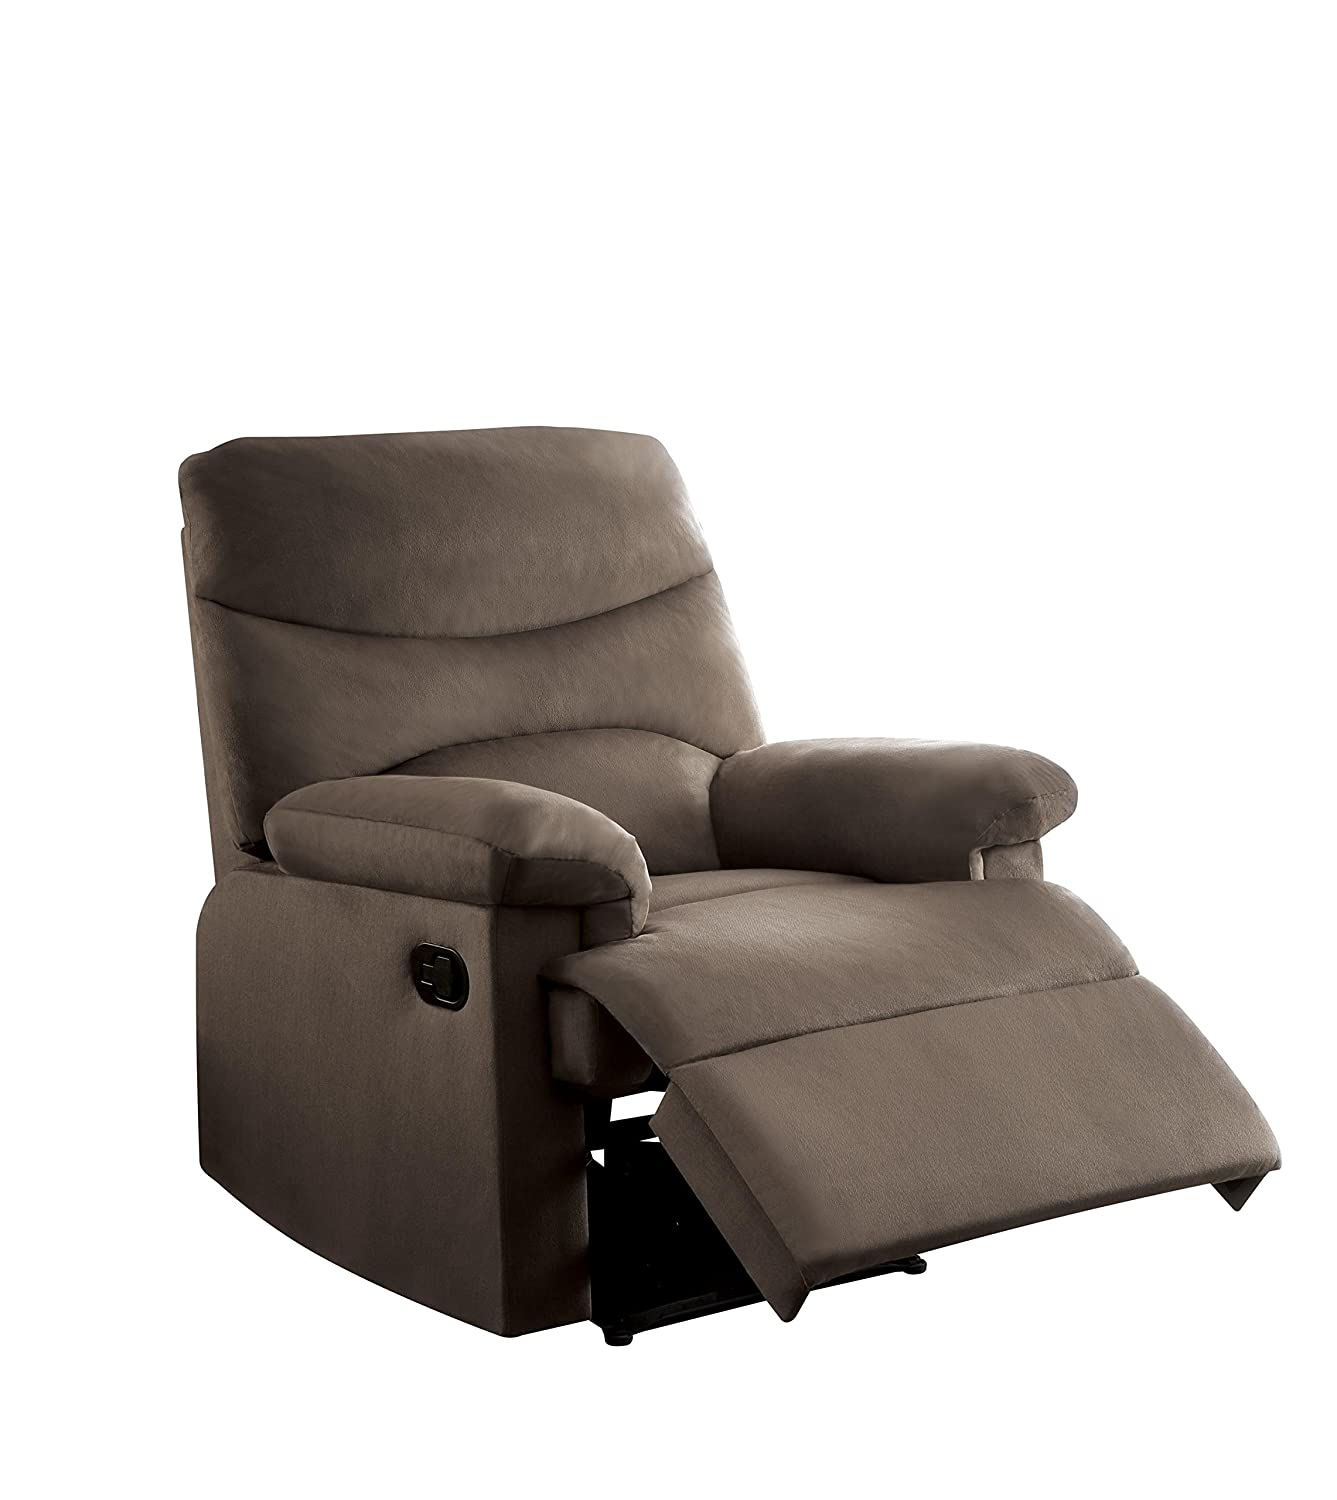 Amazon.com: Acme Furniture Acme 00703 Arcadia Recliner, Light Brown woven  Fabric: Kitchen & Dining